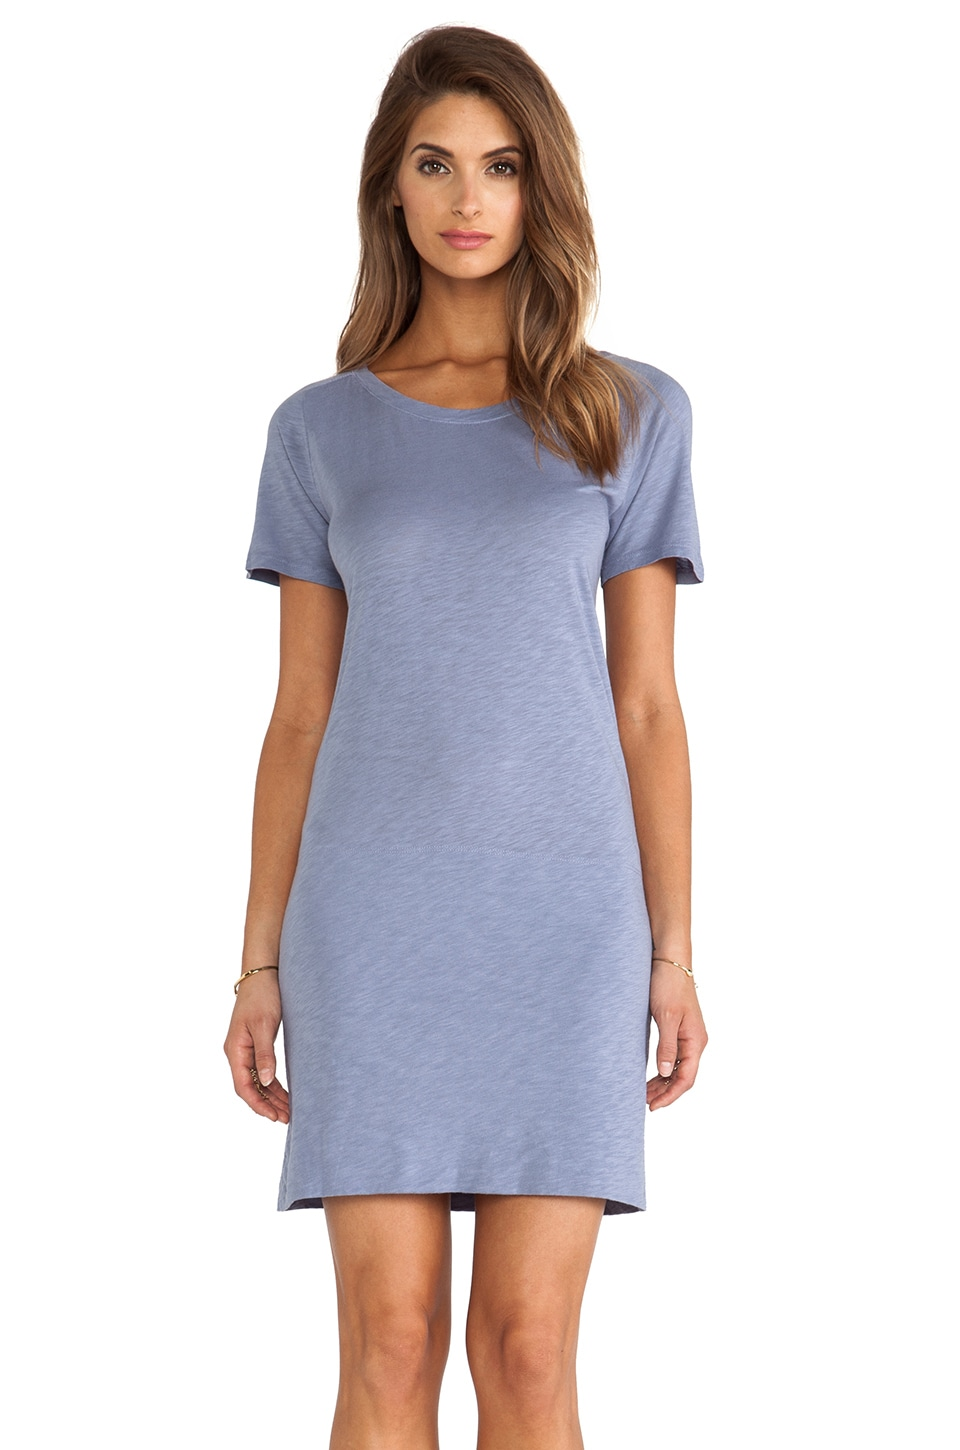 MONROW Slub Cotton Modal T-Shirt Dress in Denim